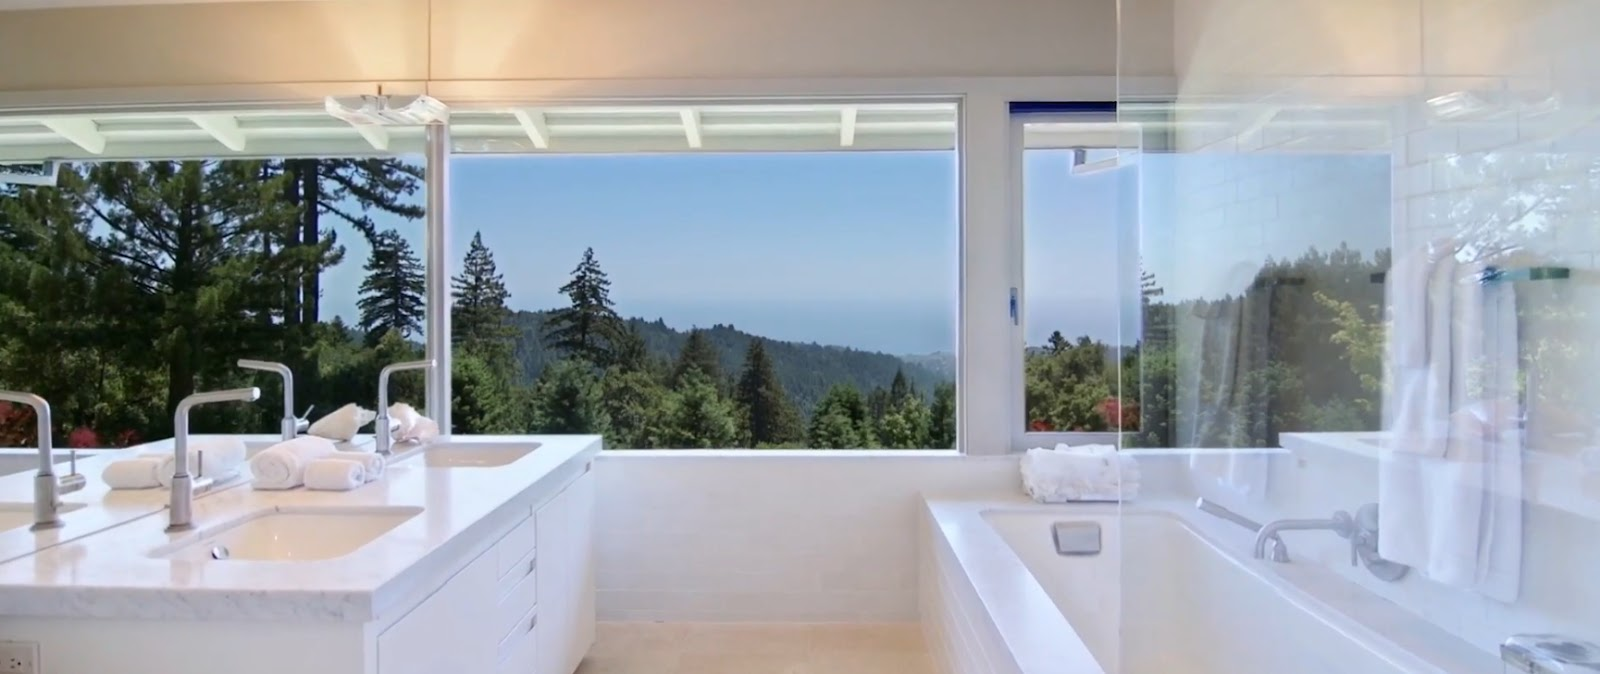 Luxury House Interior Design Tour vs. 1 Thayer Rd Santa Cruz CA | Santa Cruz Homes for Sale